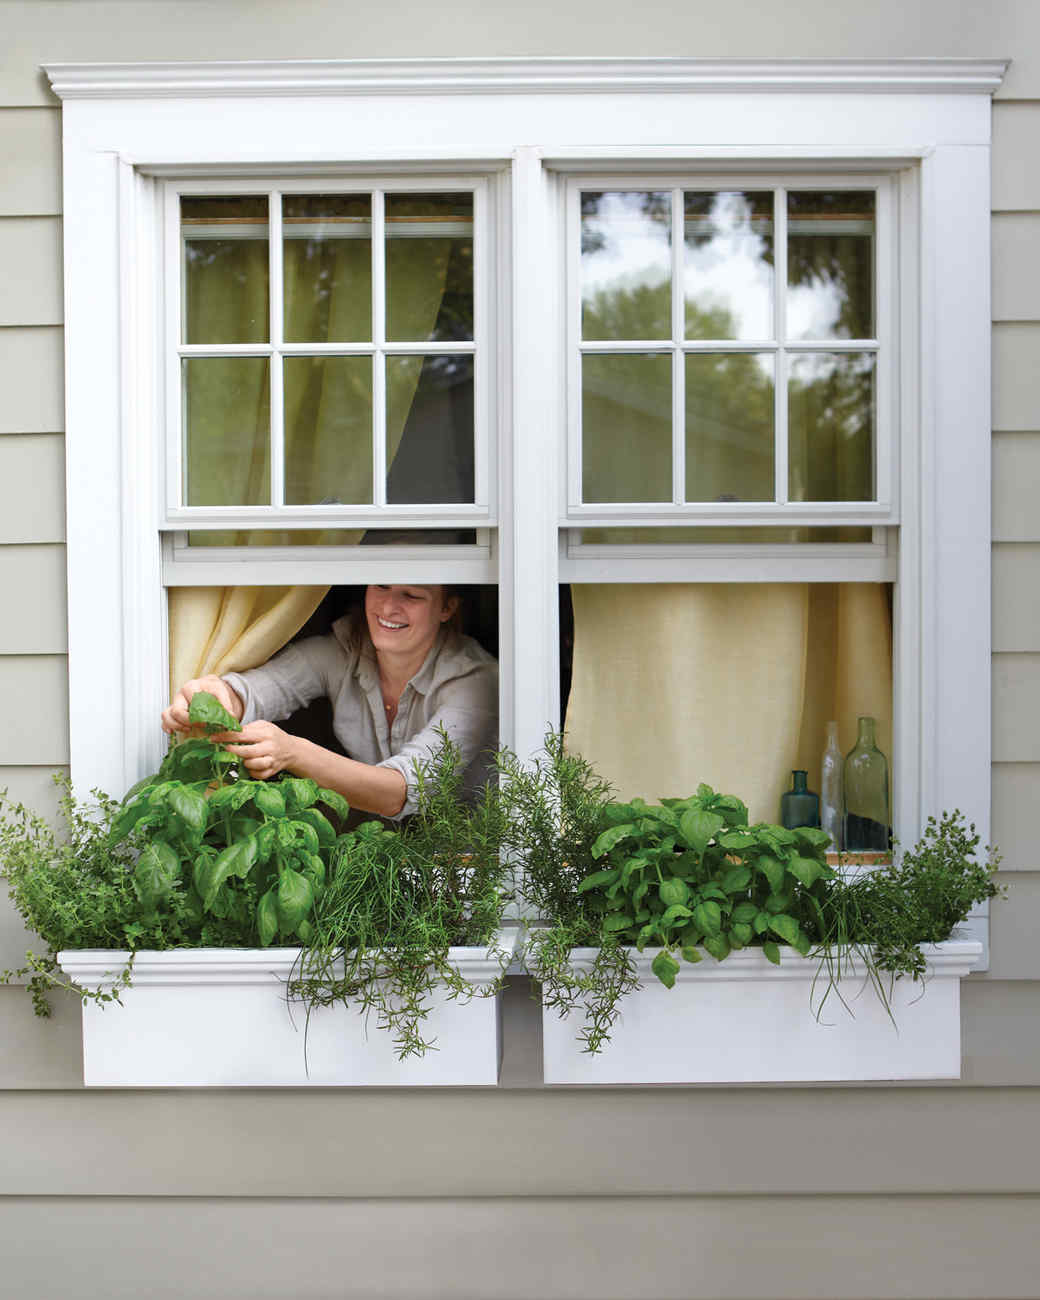 Small space garden ideas martha stewart - Small garden space ideas property ...